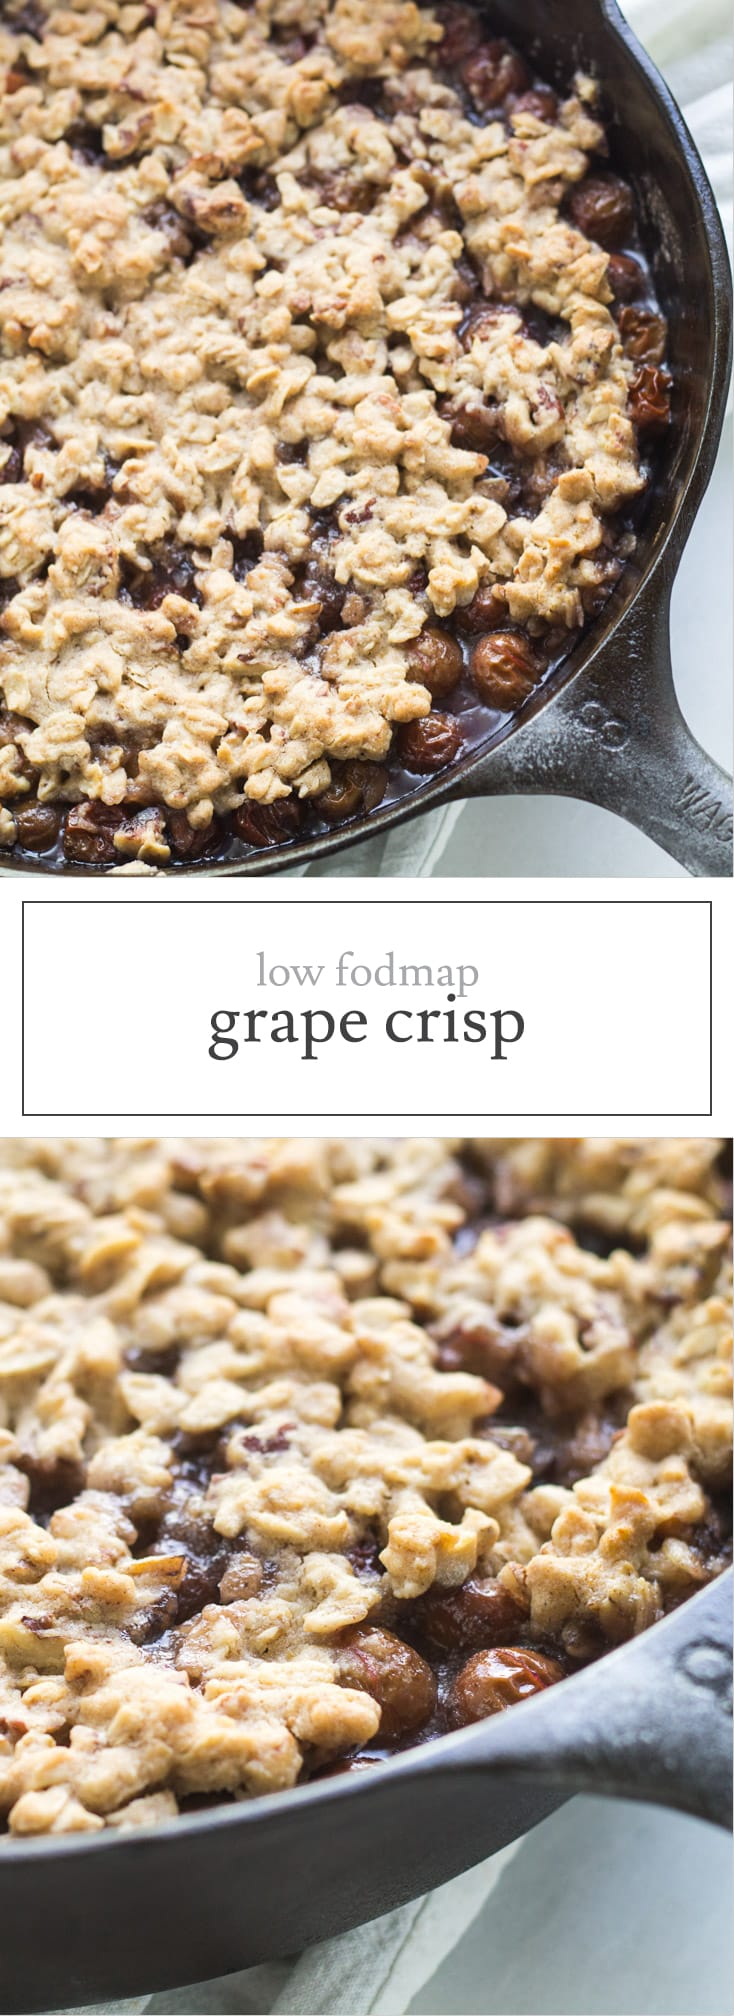 Grapes may be more commonly enjoyed fresh, but they are the star of this scrumptious Low Fodmap Grape Crisp! It's gluten free, too!